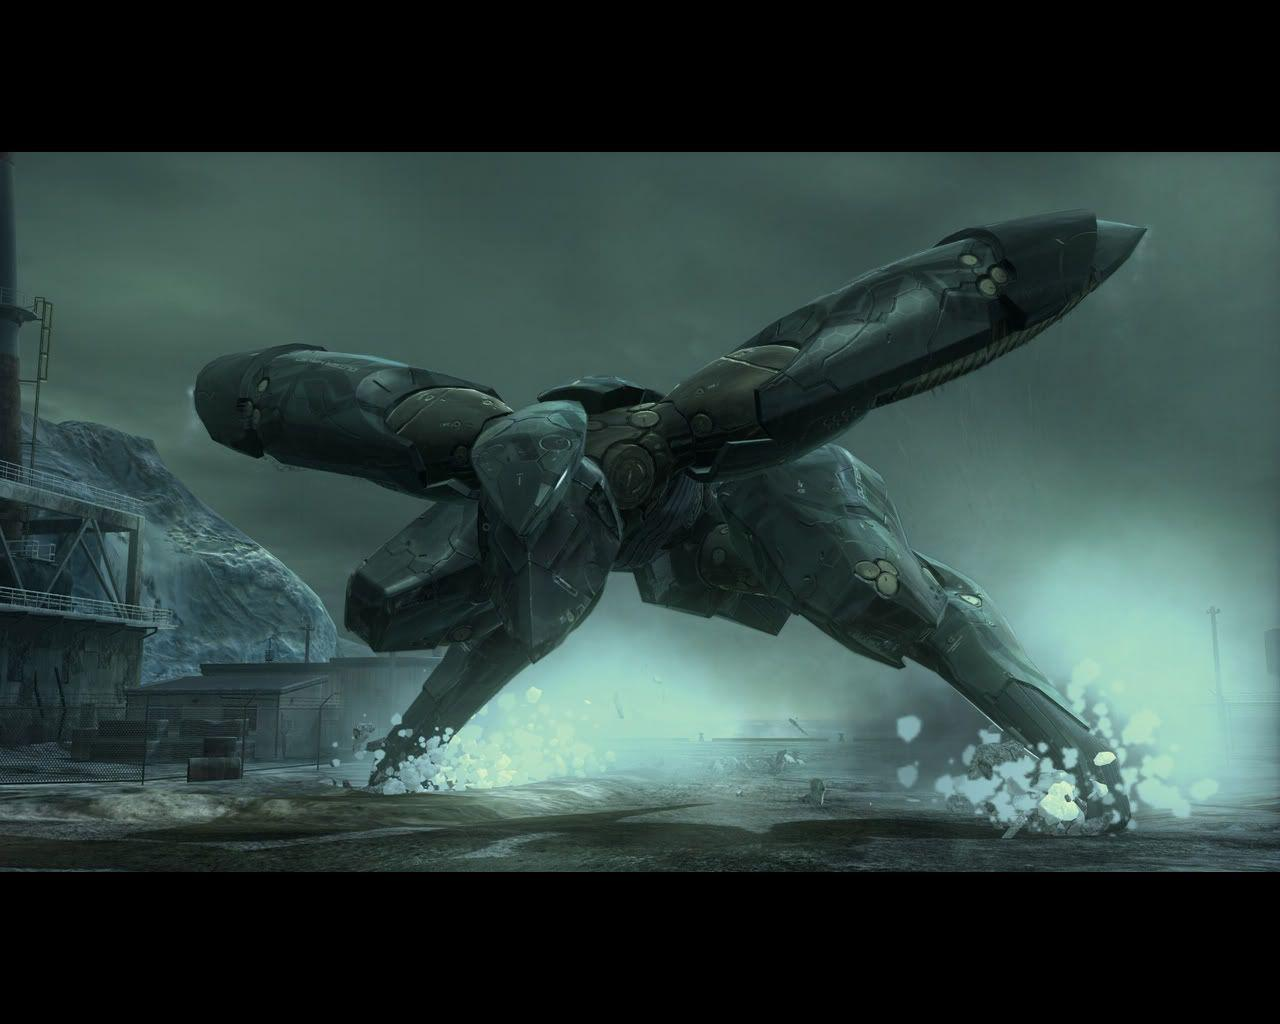 MGS 4 Wallpapers